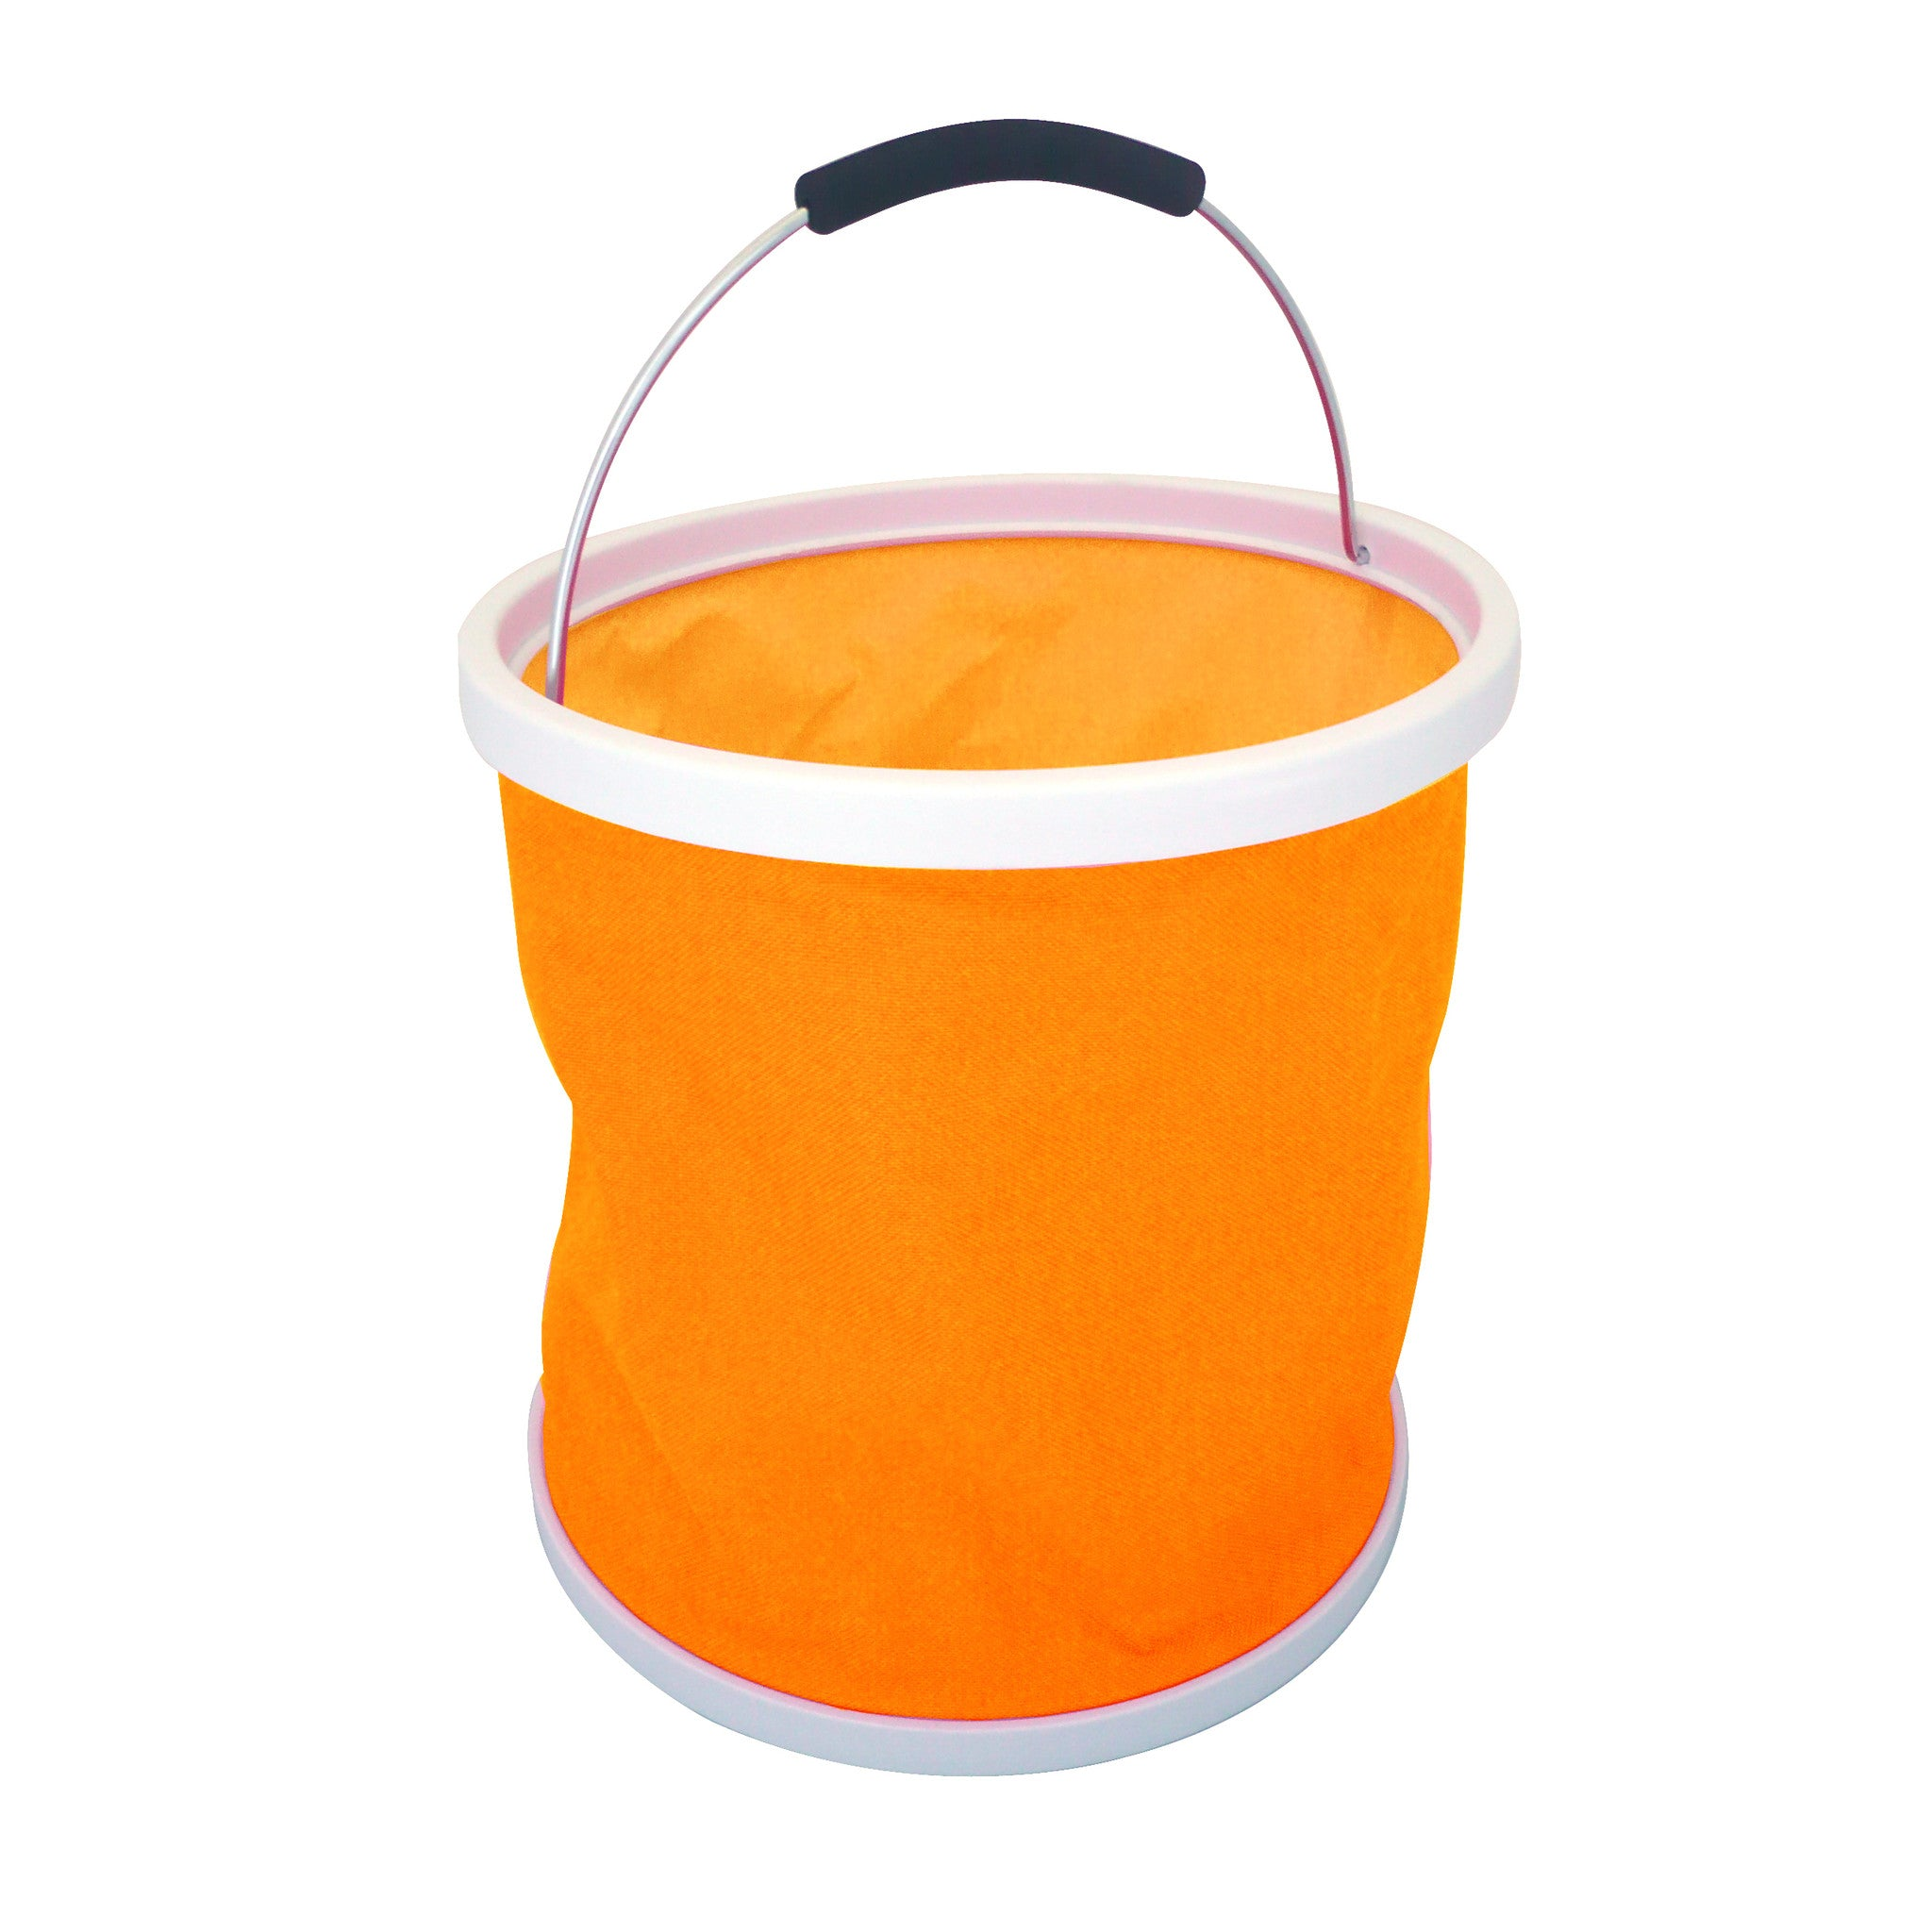 Bucket ina Bag - The Potting Shed Garden Tools